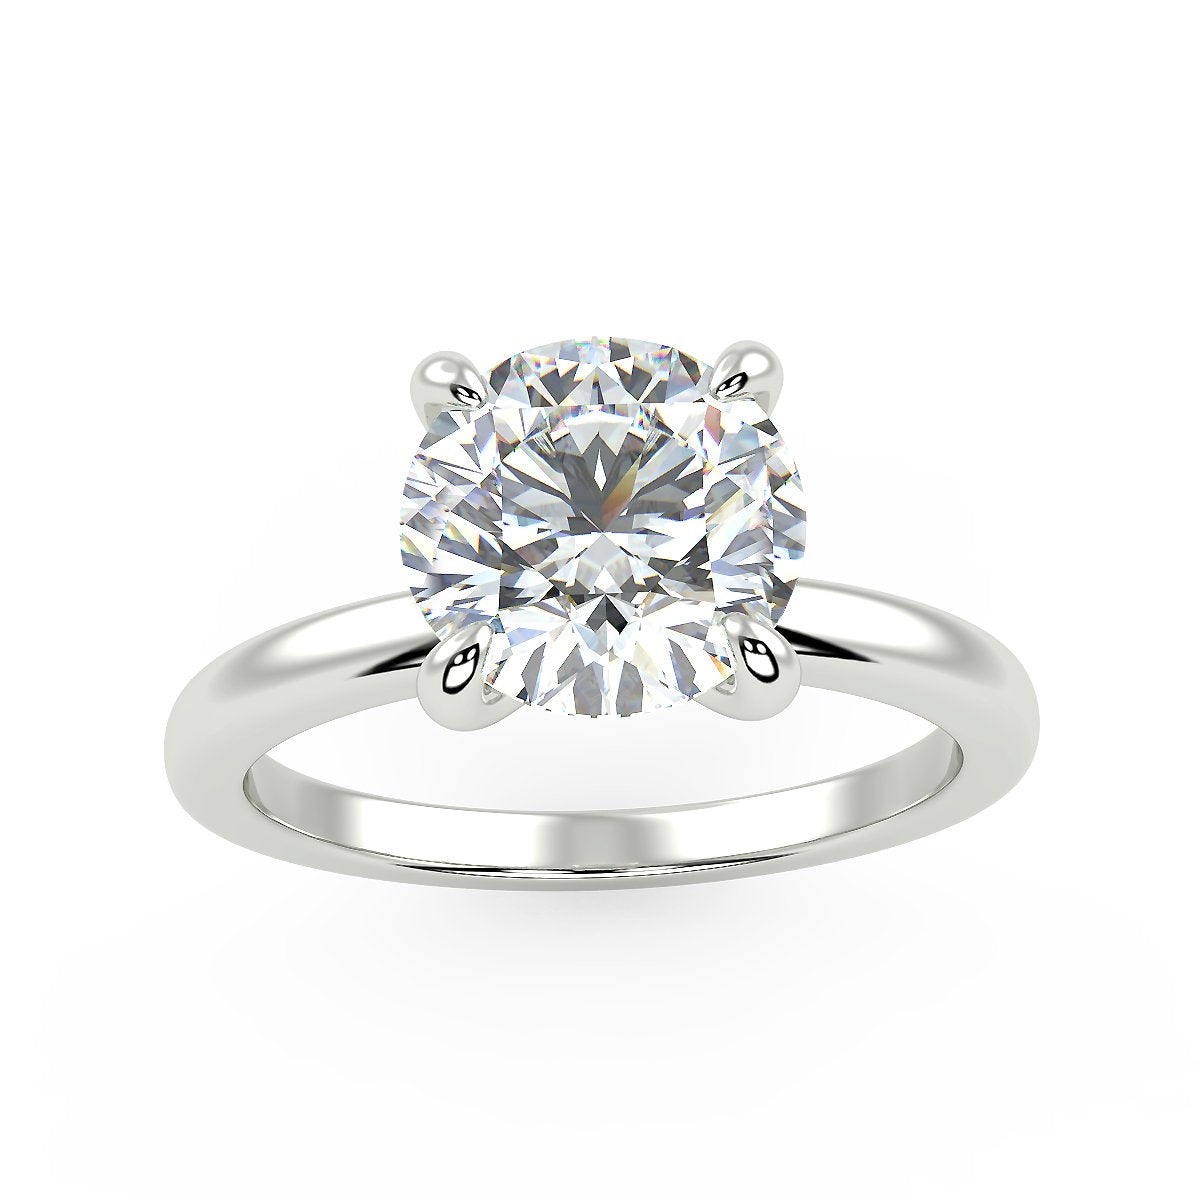 Sirius Engagement Ring in White Gold